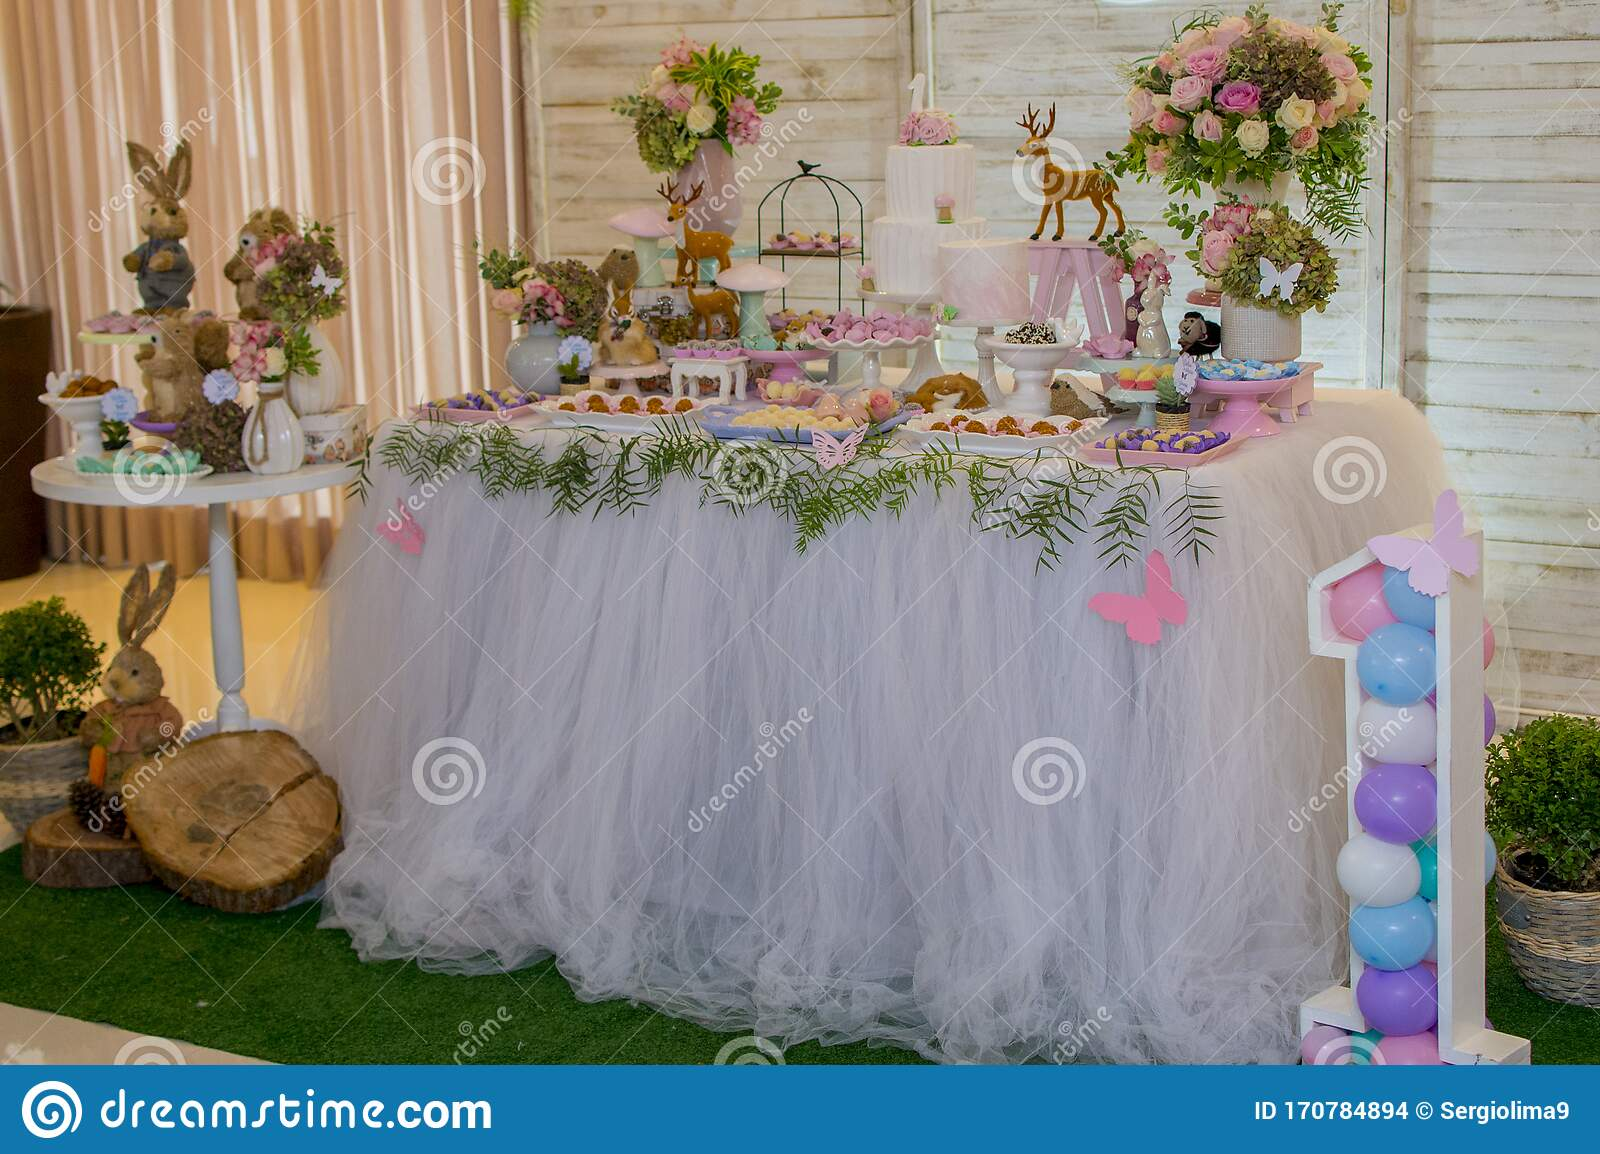 Pleasing Luxurious Table Of Sweets And Birthday Cake Stock Photo Image Of Funny Birthday Cards Online Hetedamsfinfo